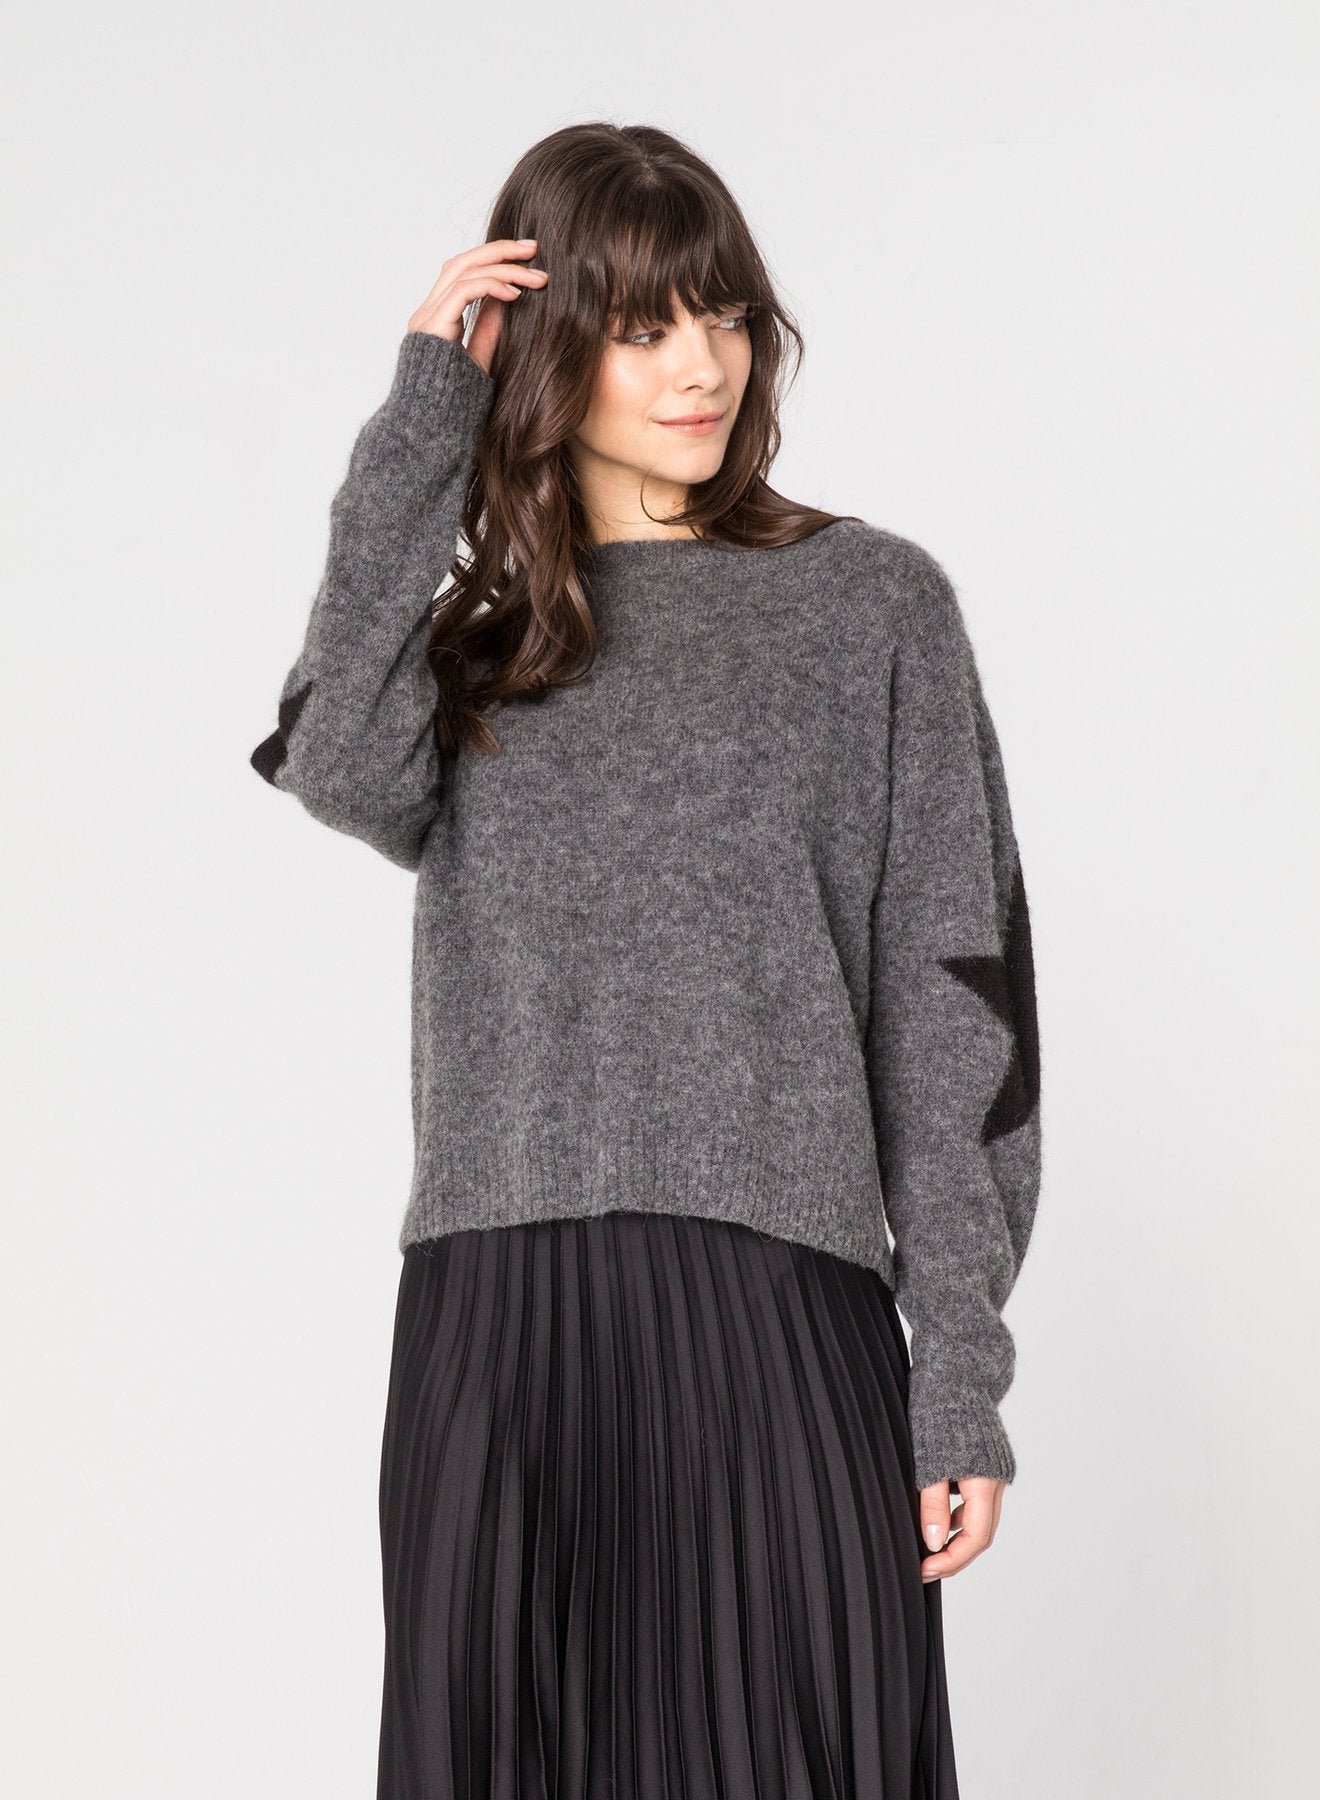 Chrldr SLEEVE STAR - Dropped Shoulder Sweater CL11562